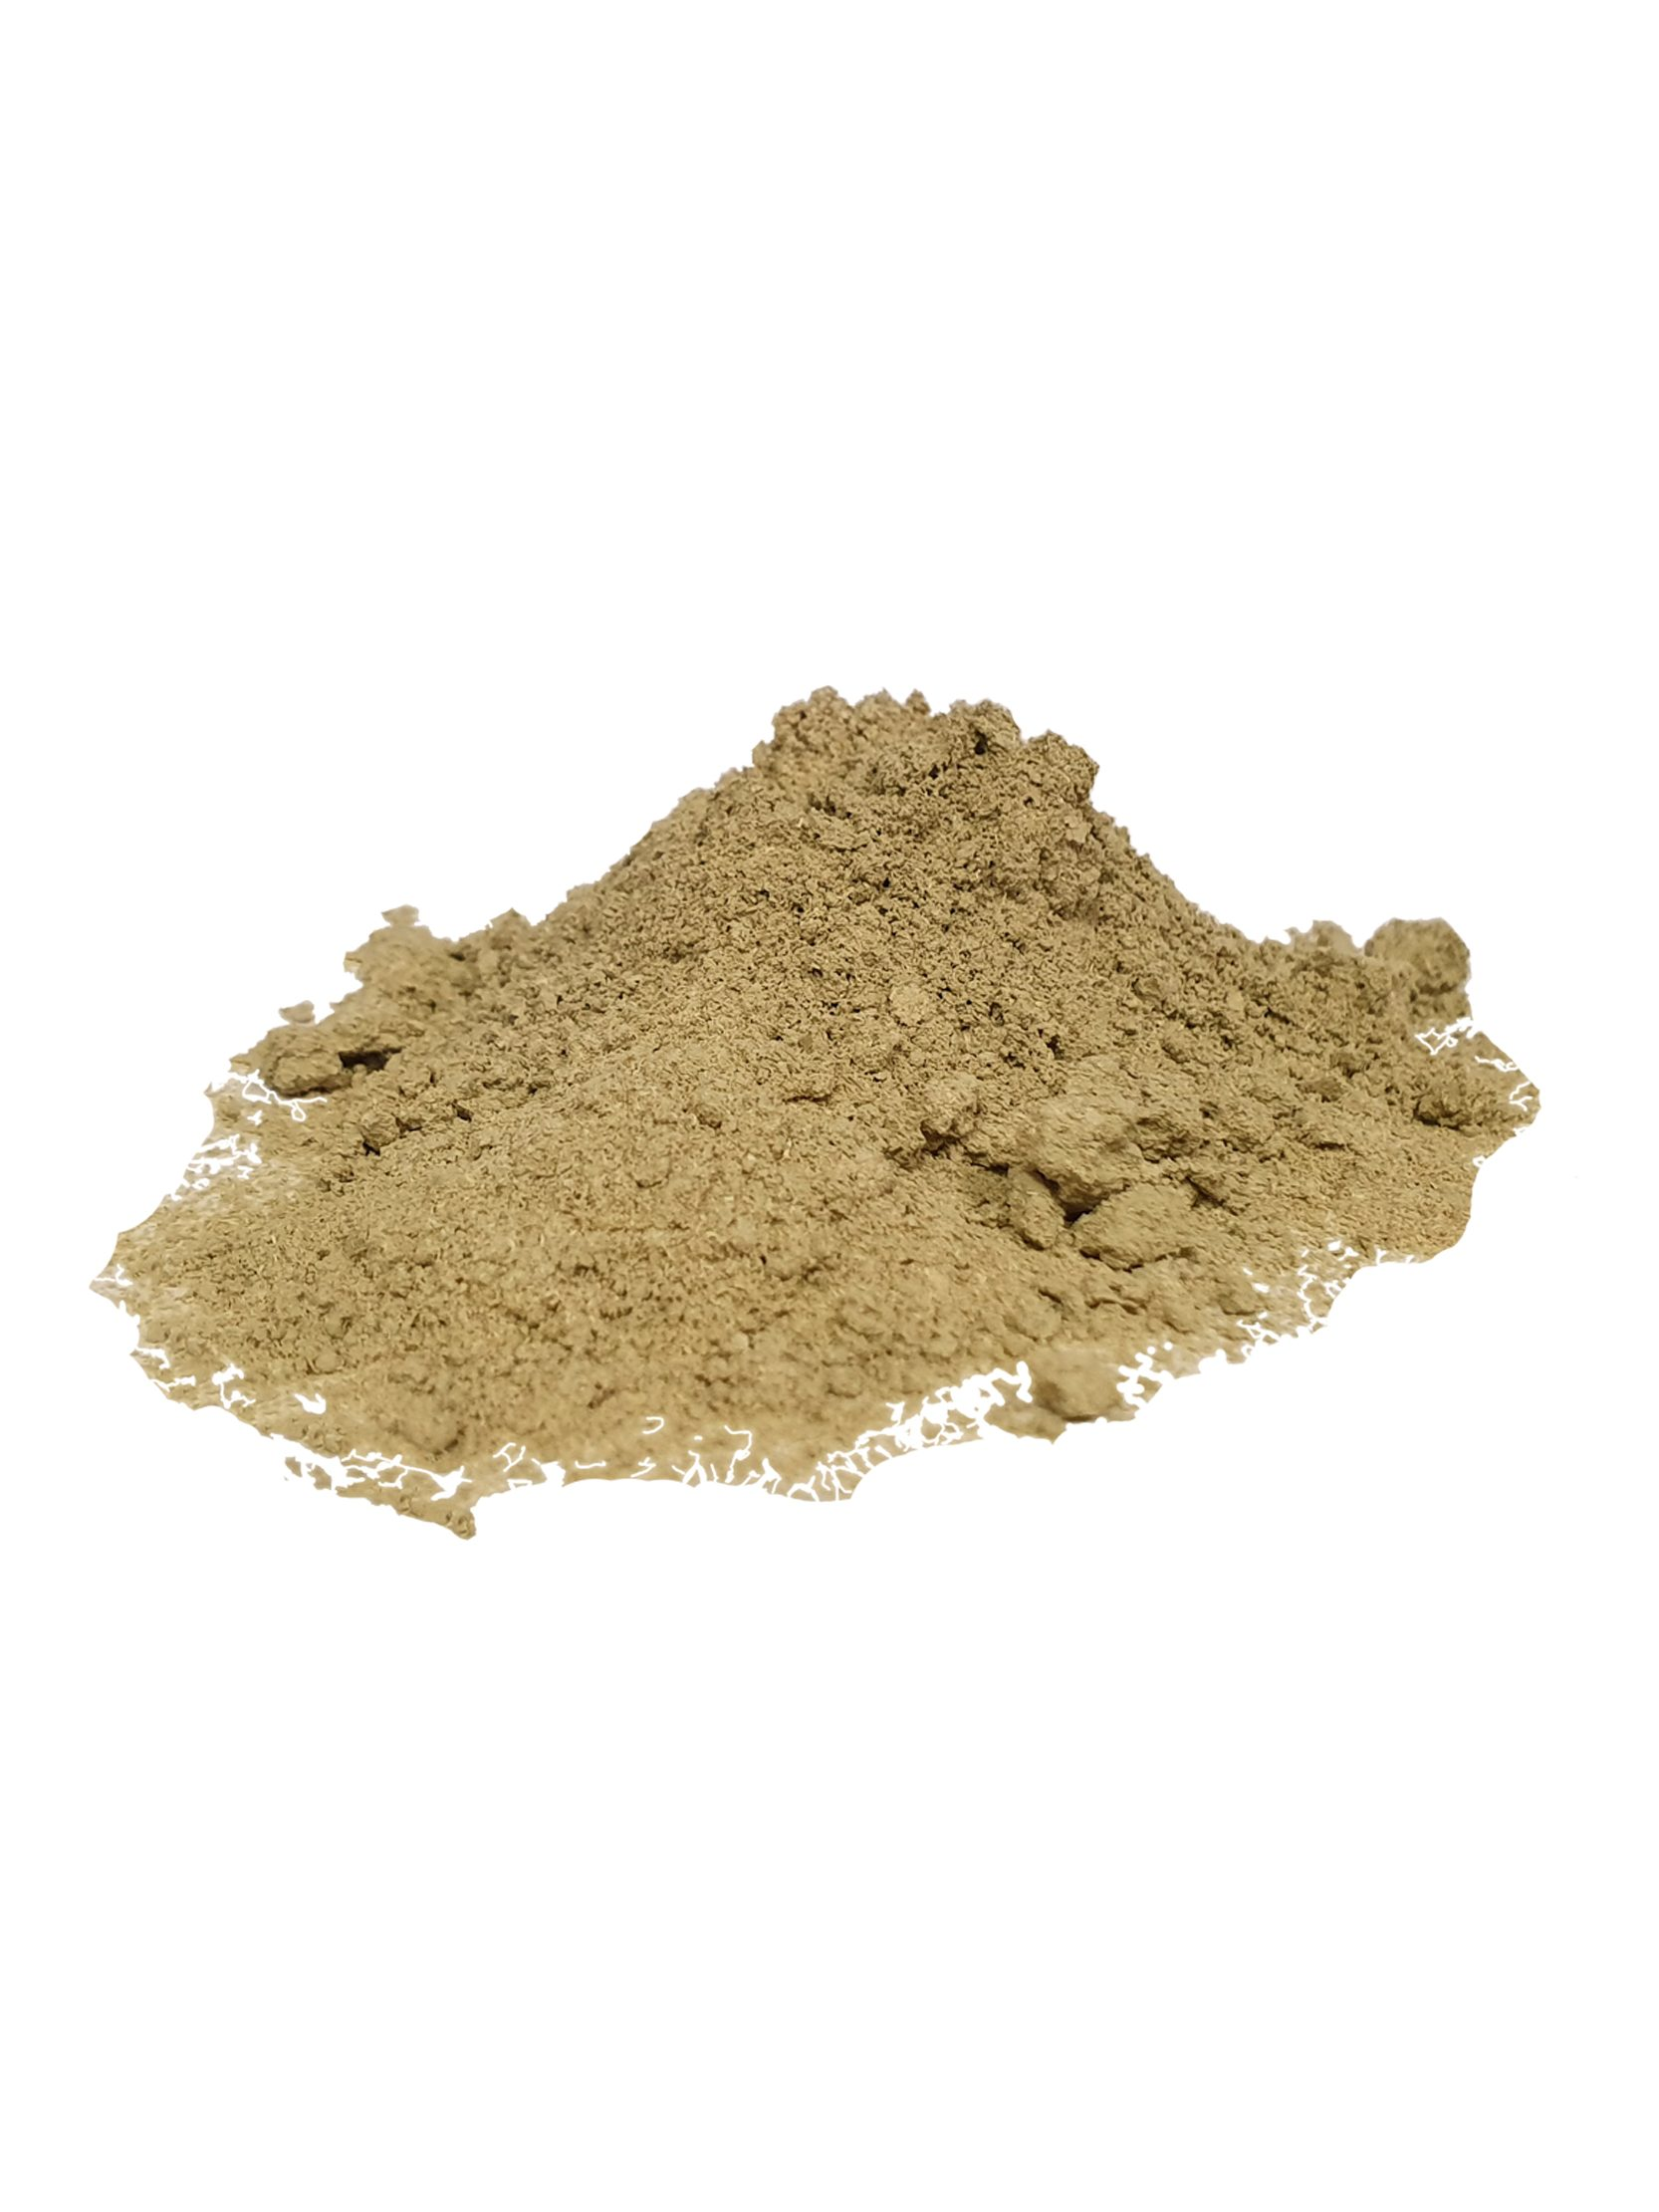 Andrographis Powder kg